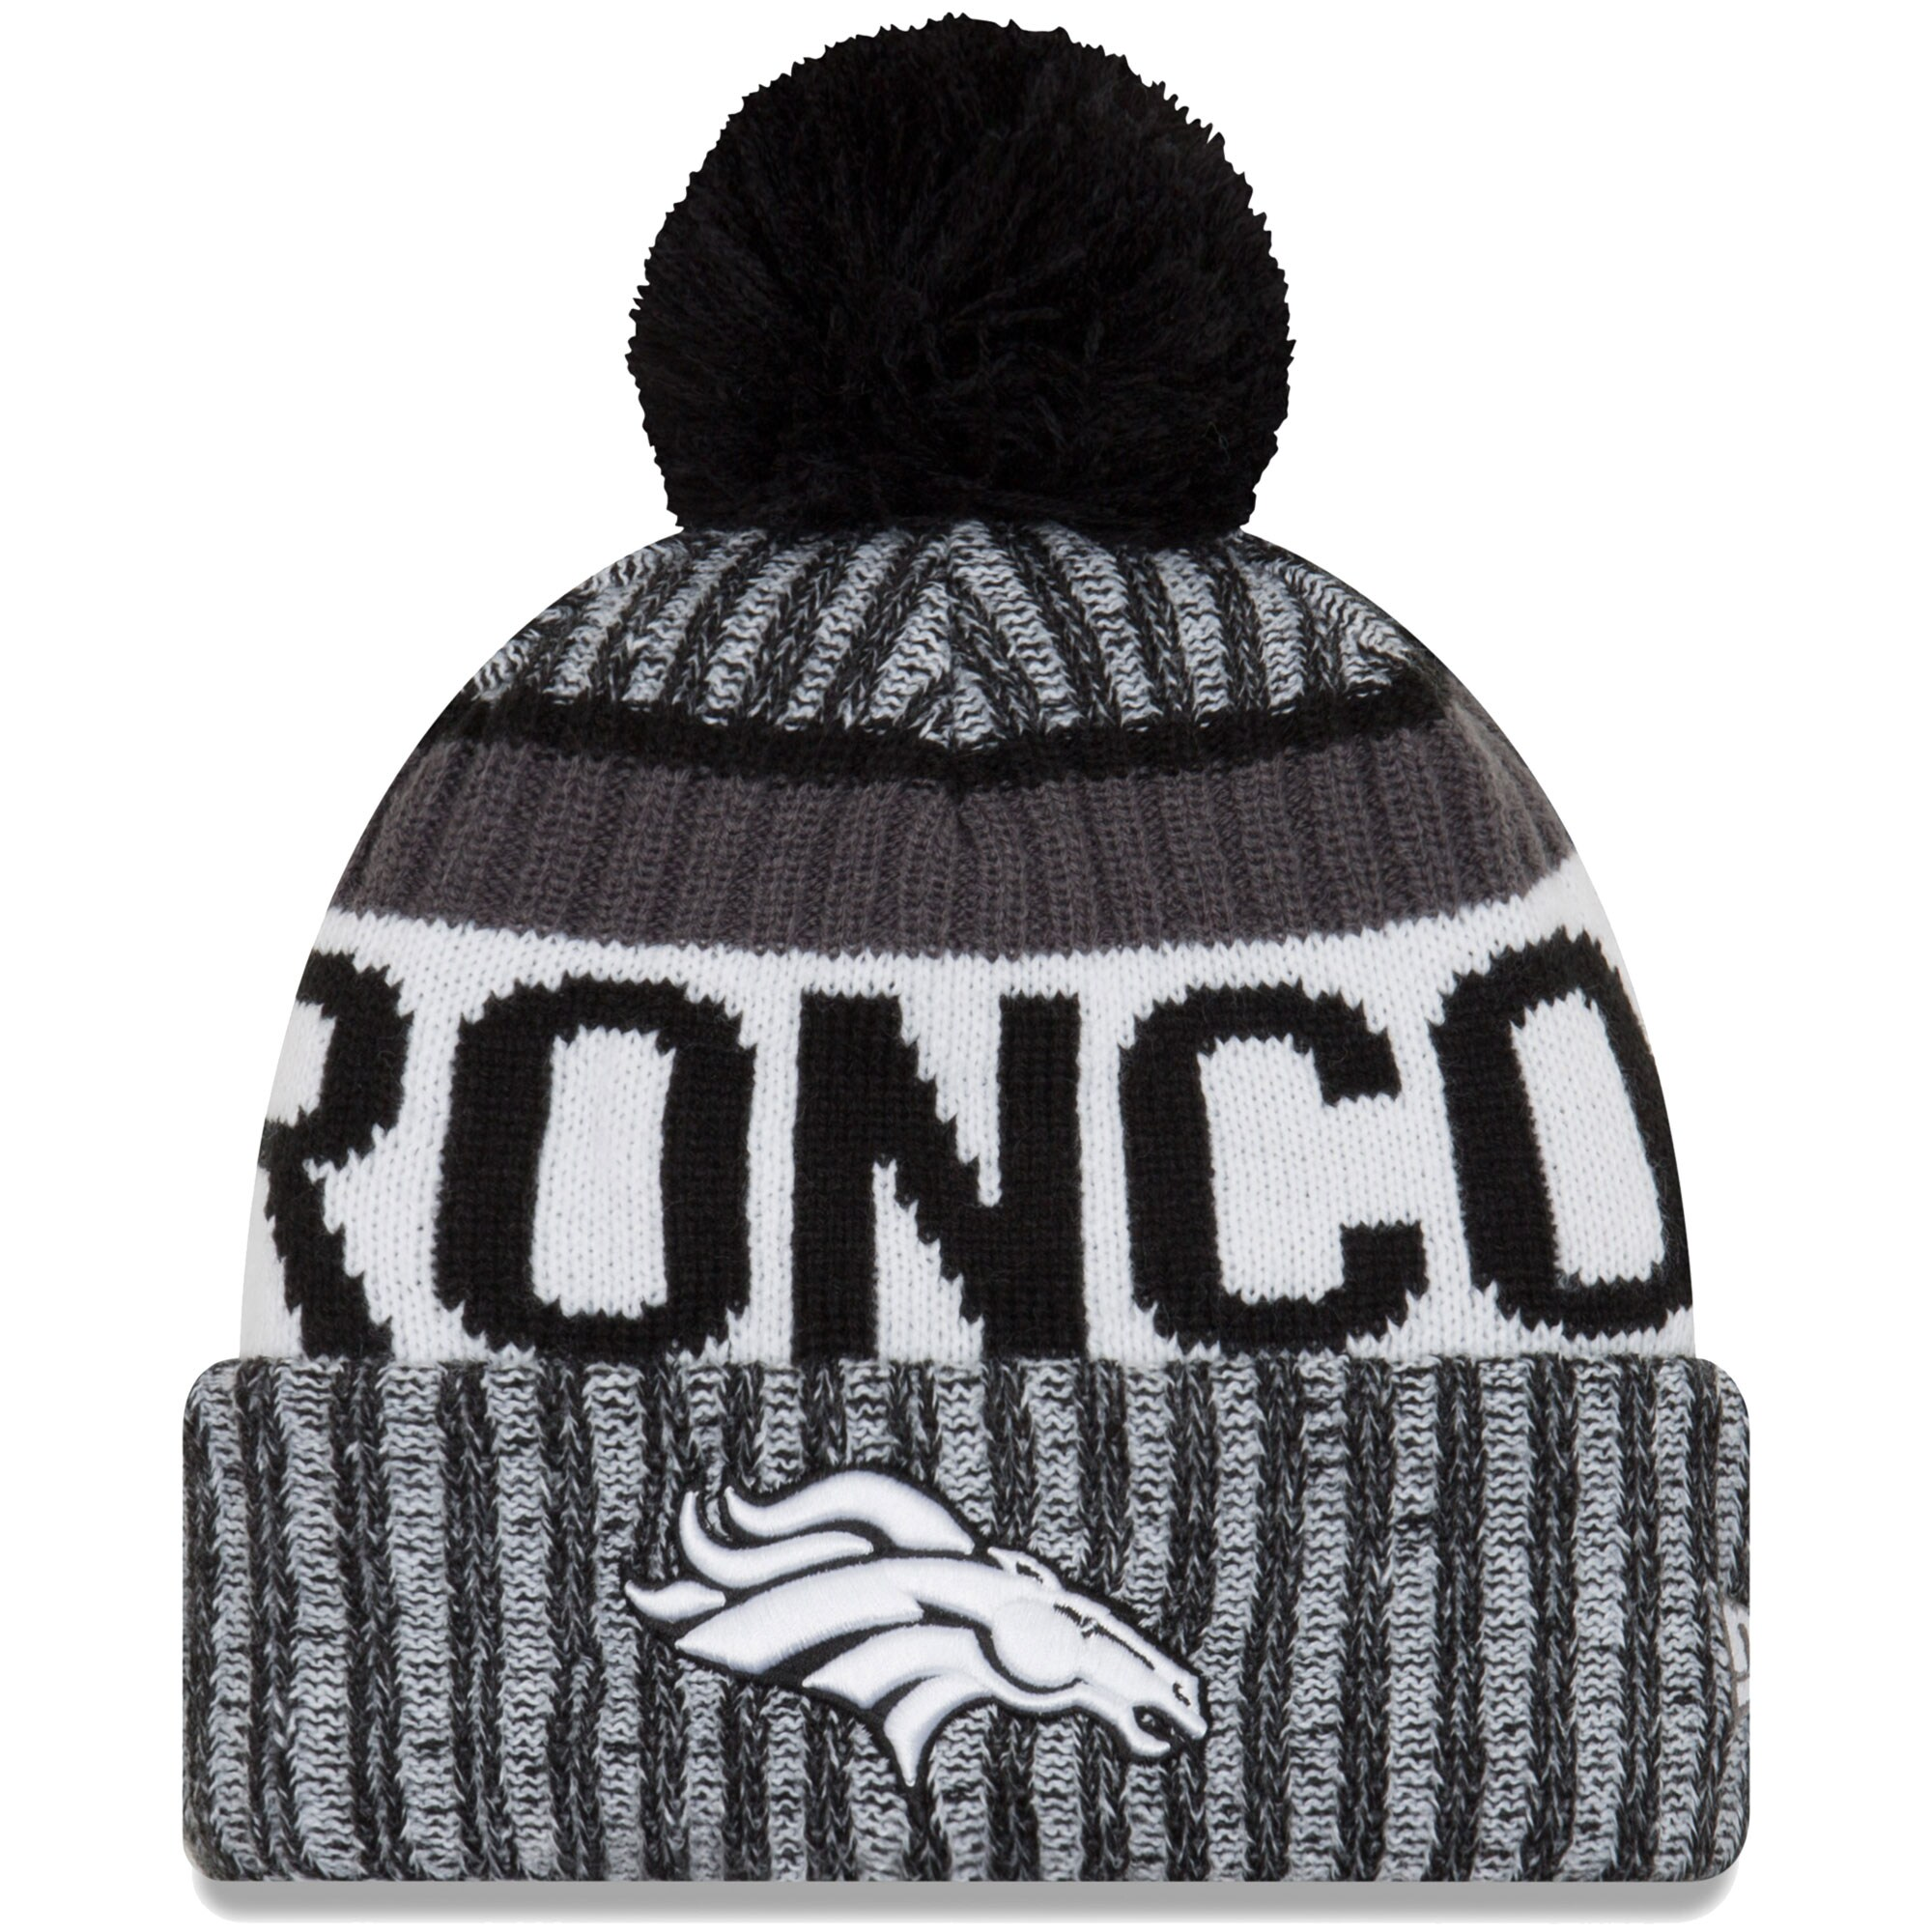 Denver Broncos New Era 2017 Sideline Cold Weather Sport Knit Hat - Black/White